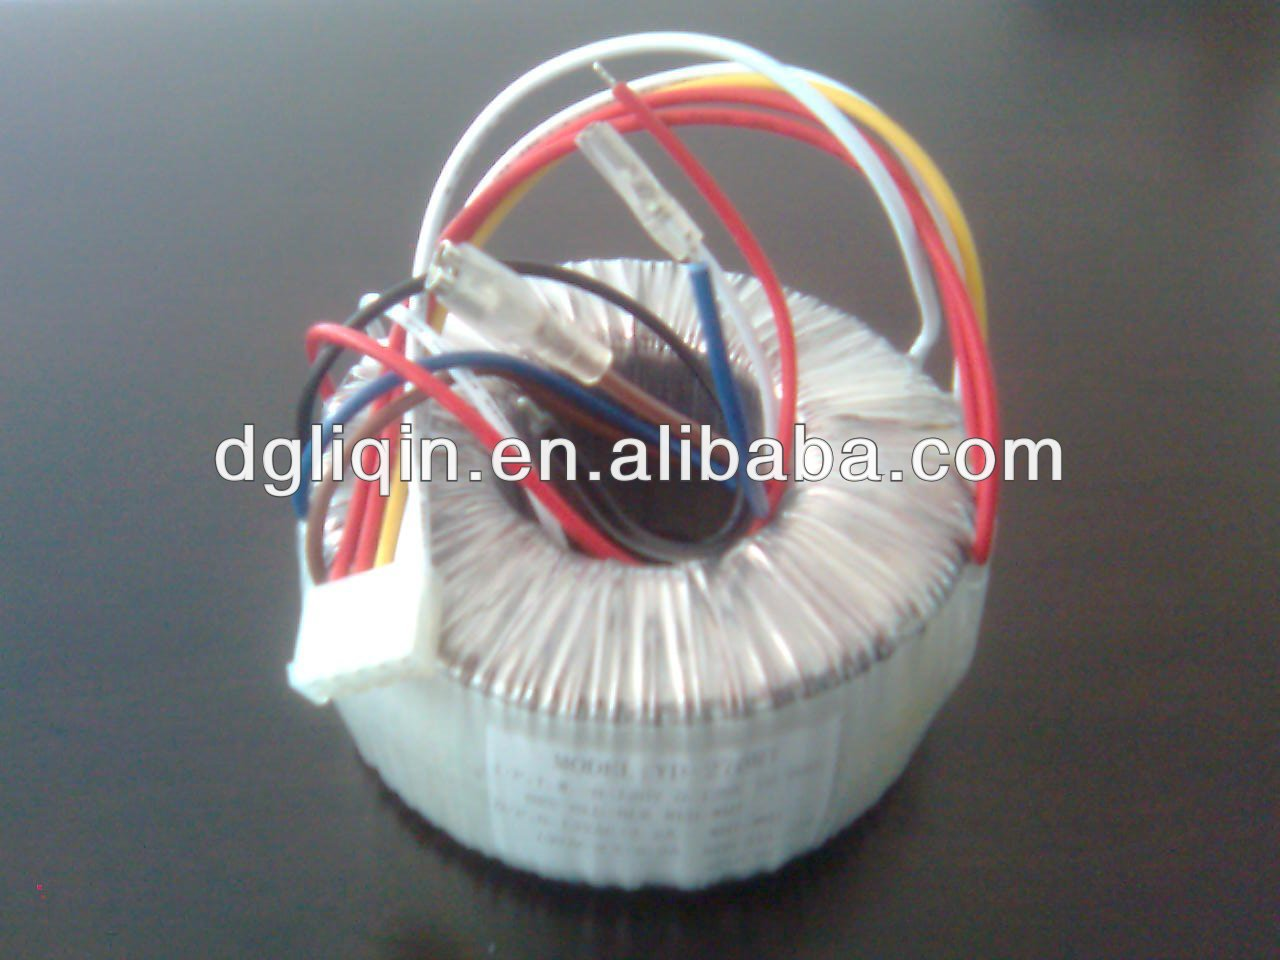 Halogen lamp electronic transformer 12v 50W